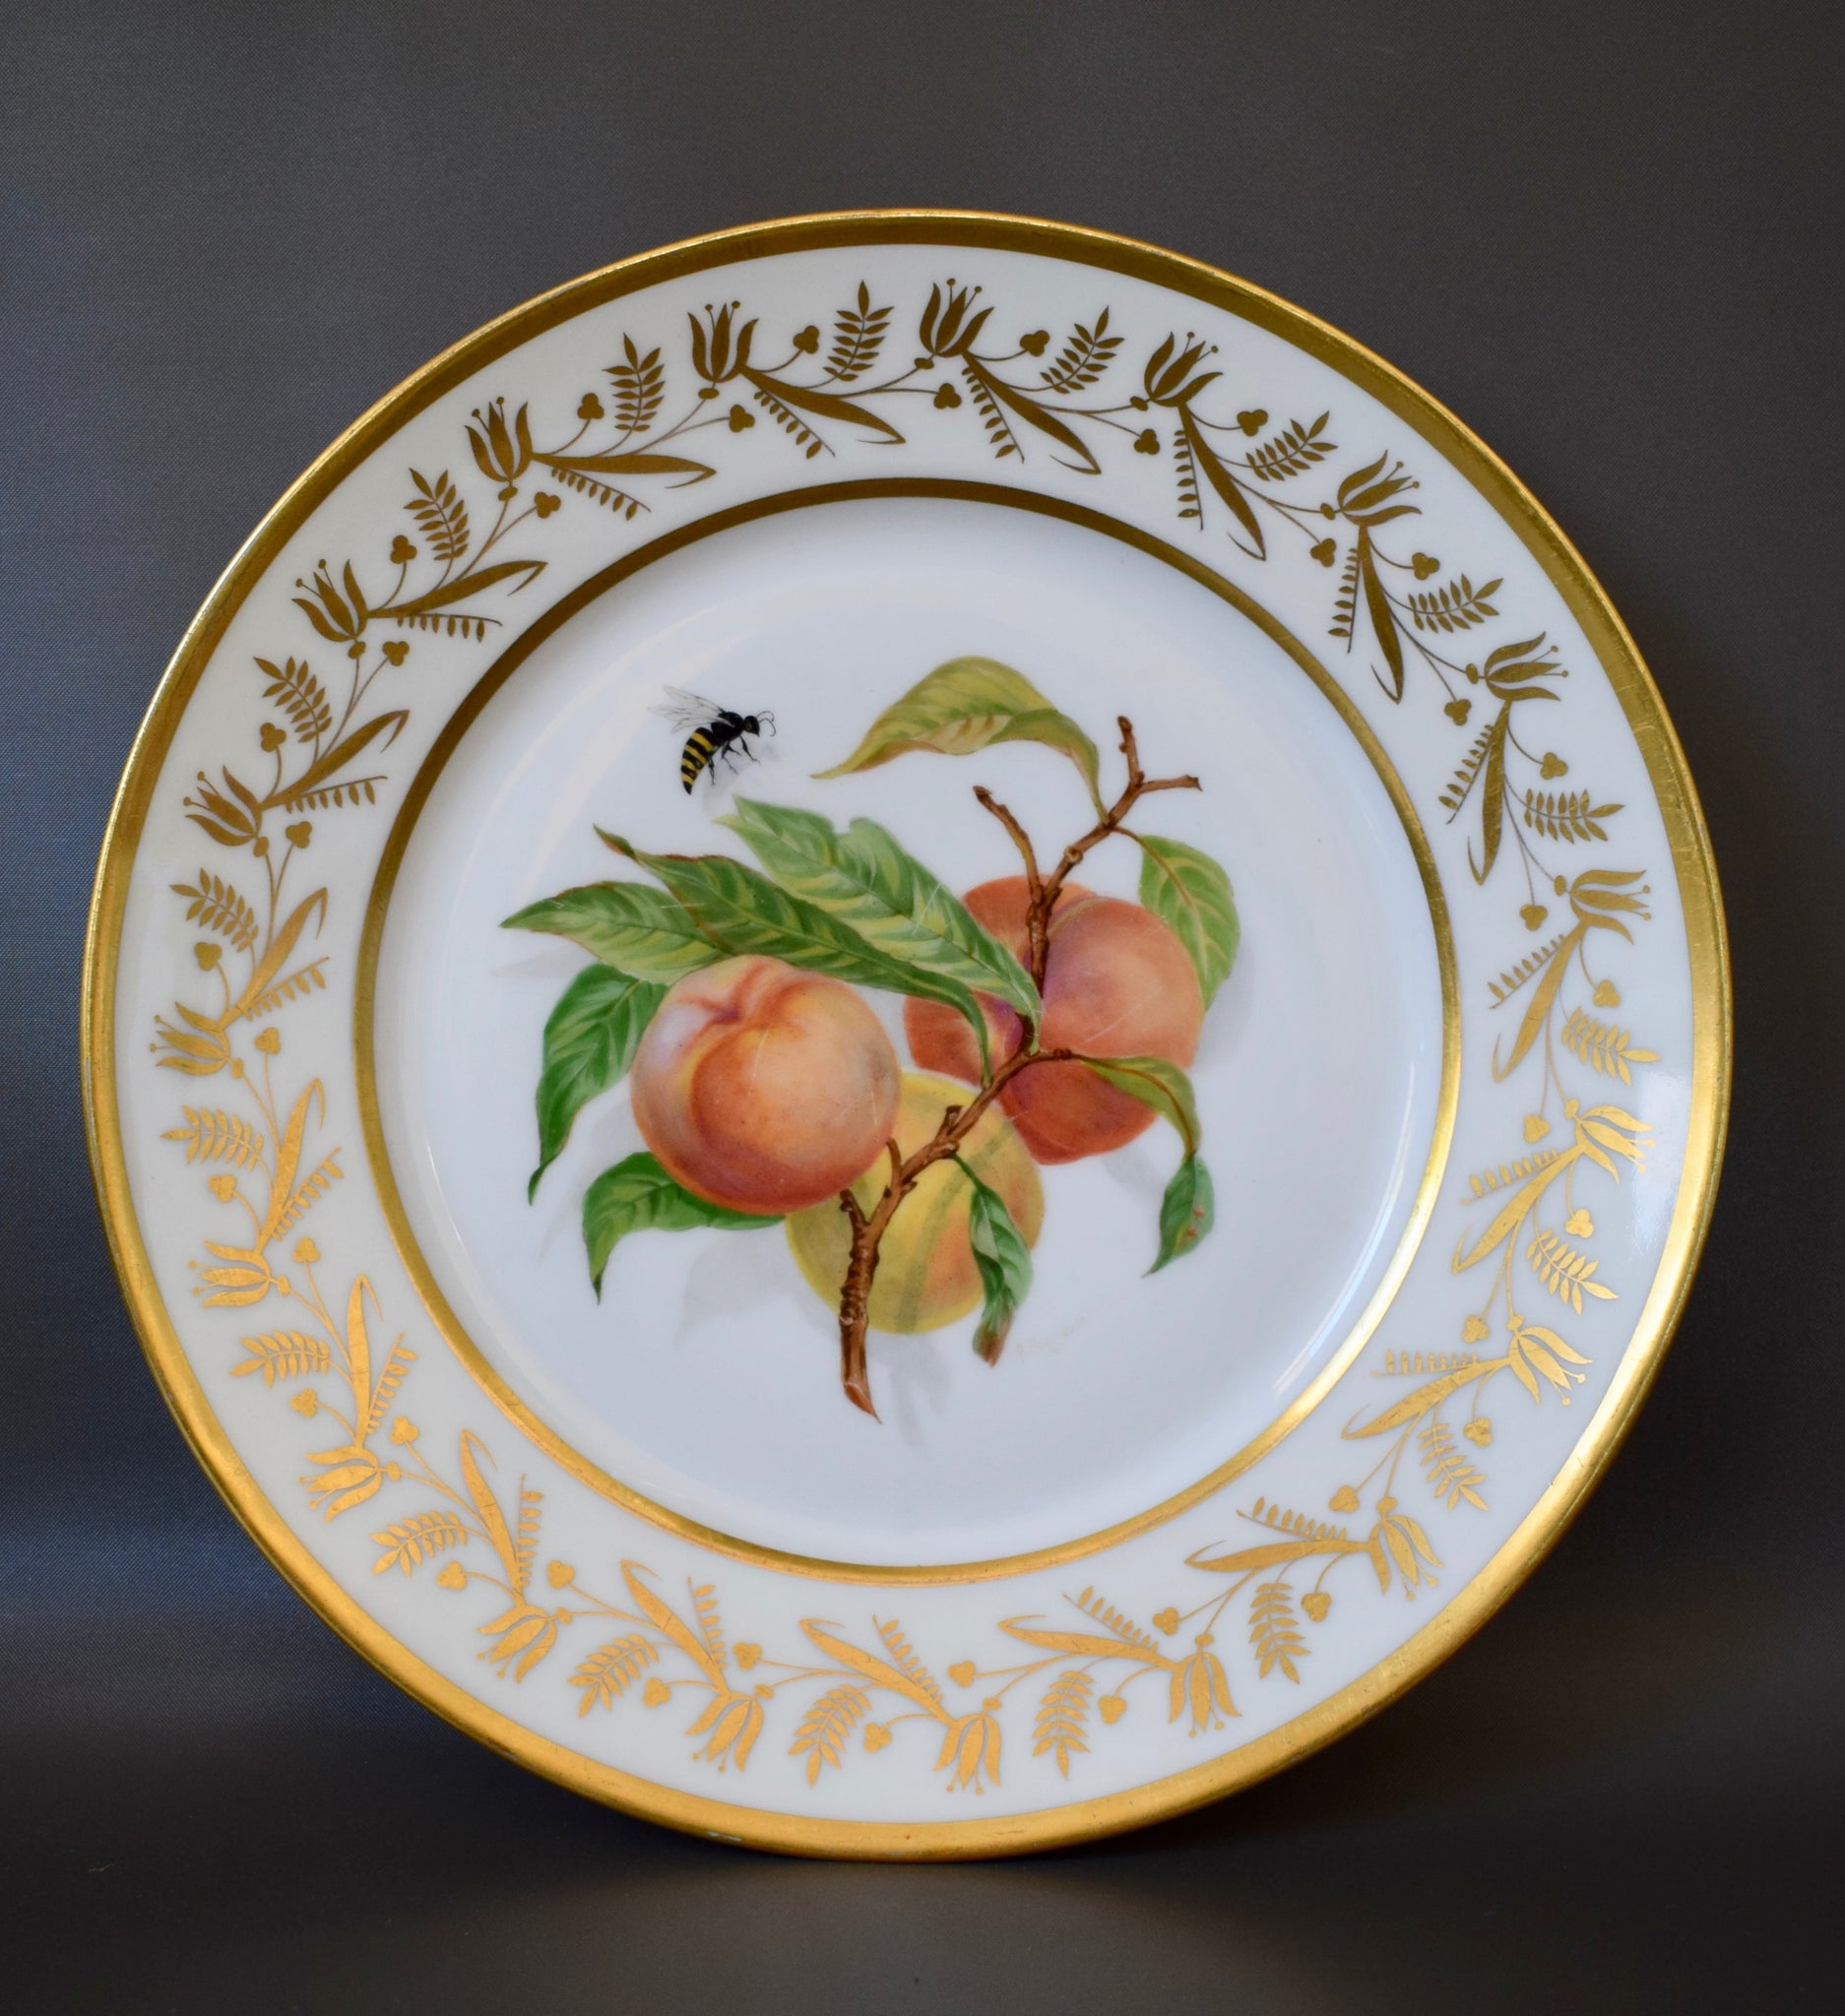 Vintage French Limoges Porcelain Hand Painted Still Life Fruits Peach Insects Plate Signed